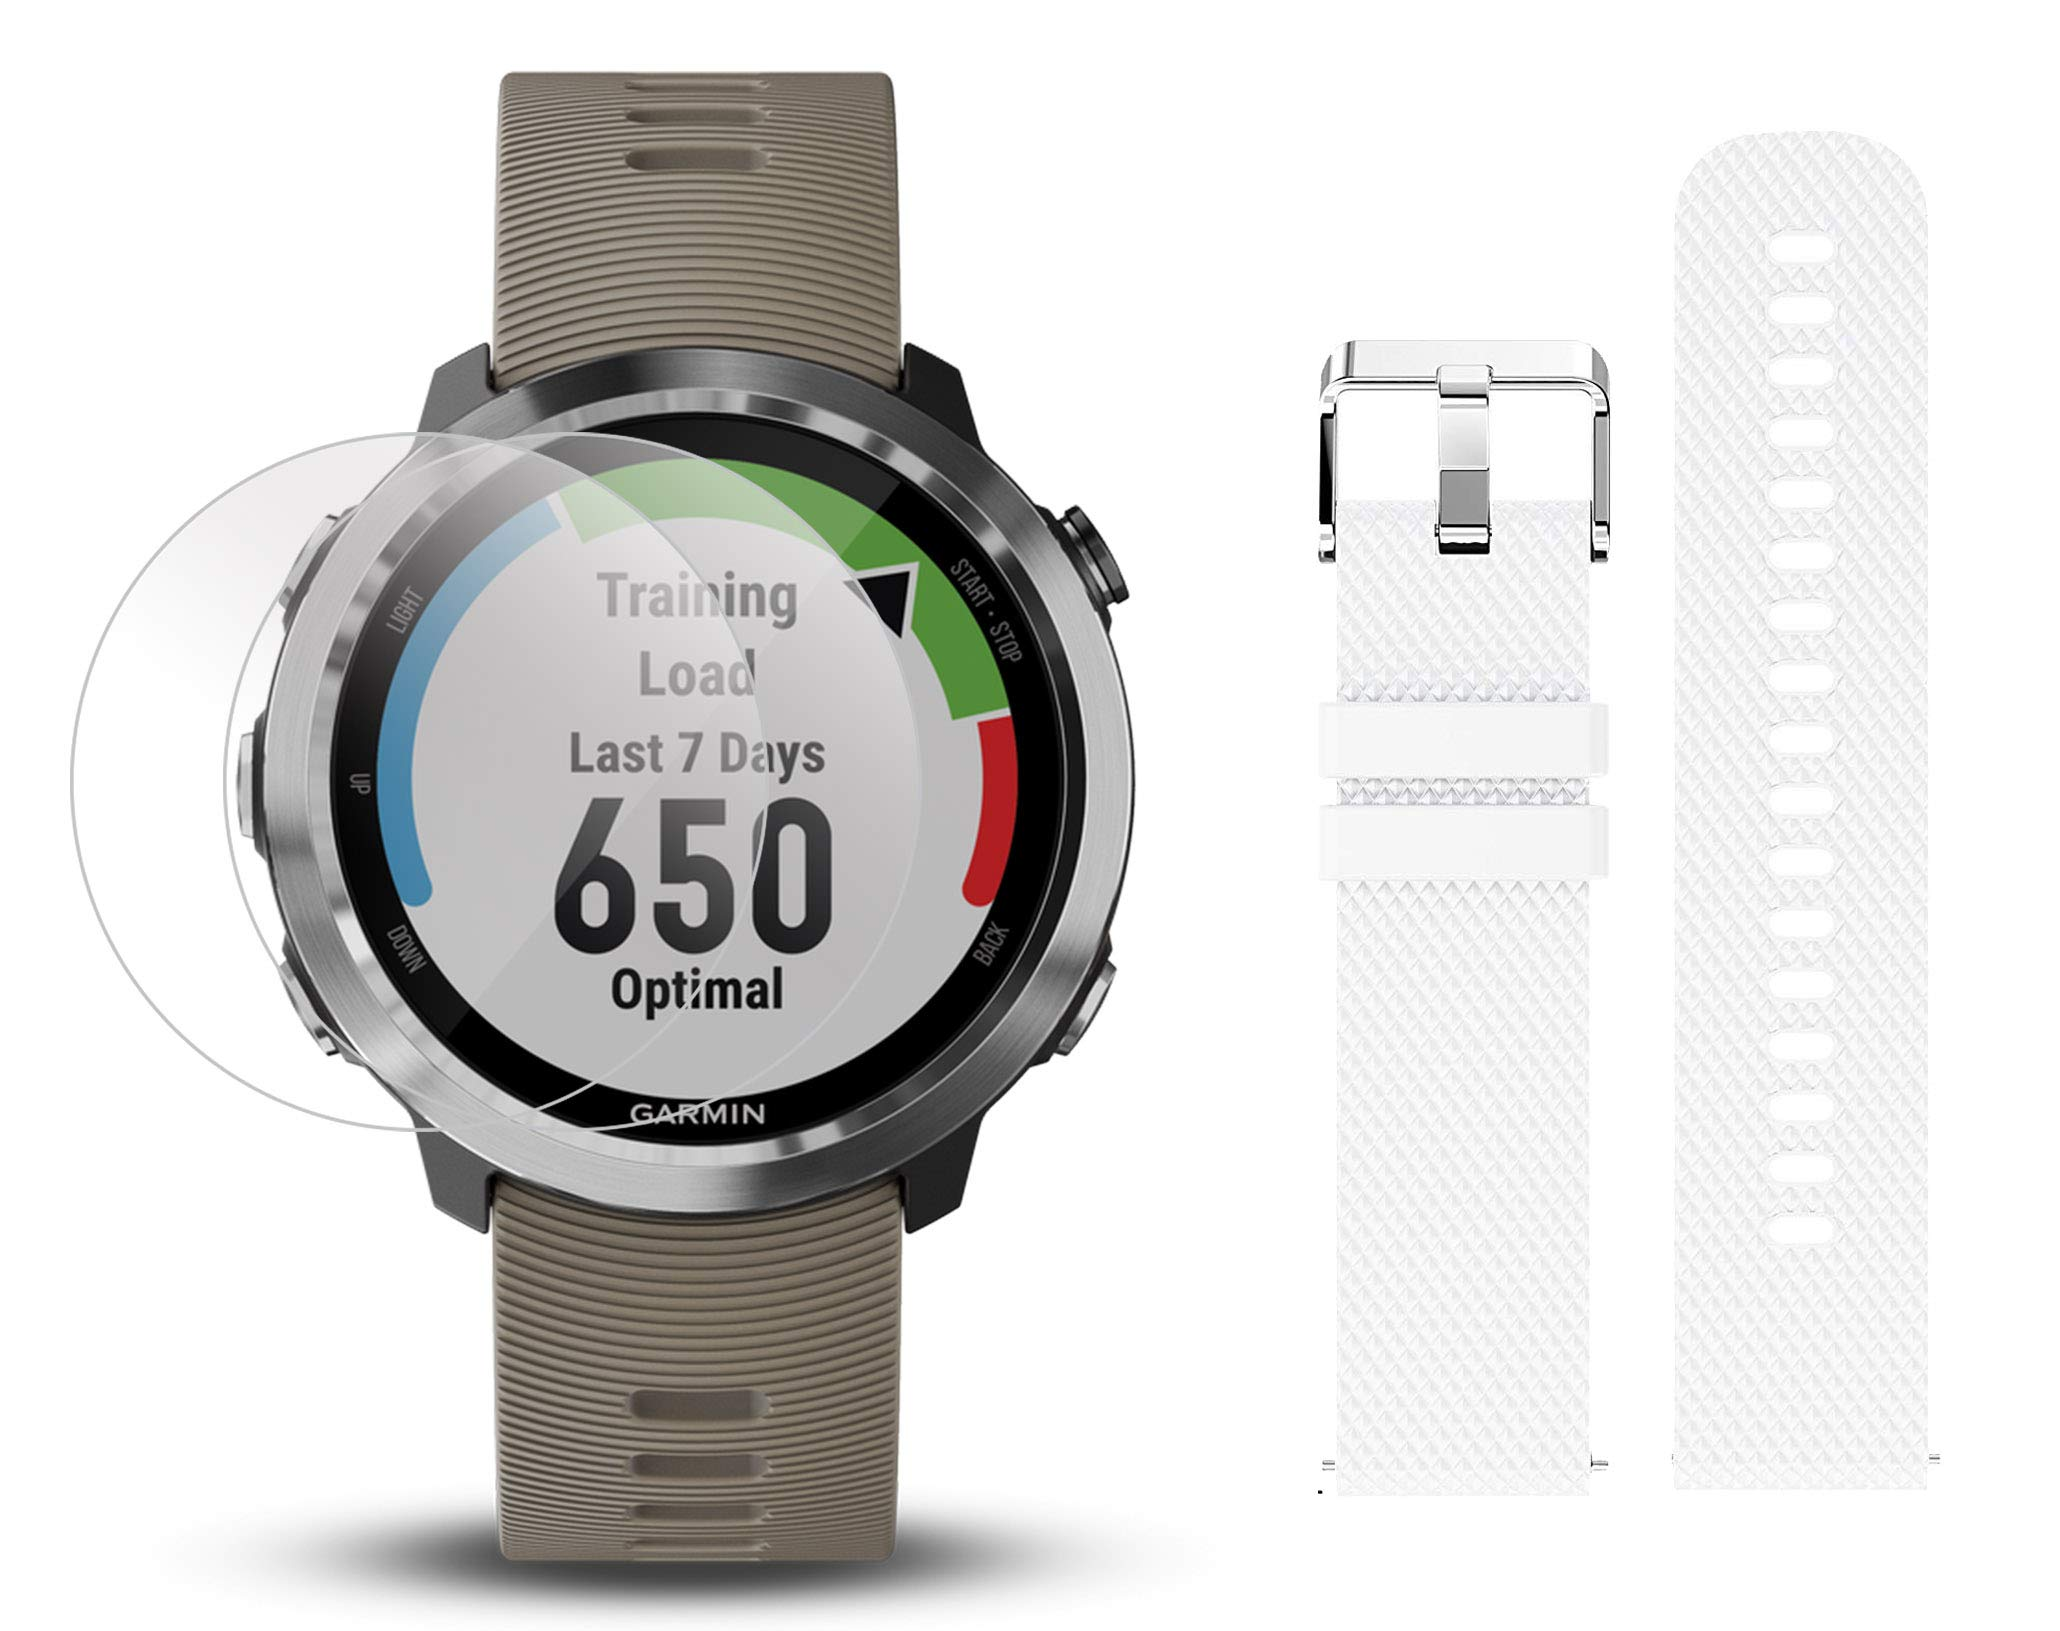 Garmin Forerunner 645 Bundle with Extra Band & HD Screen Protector Film (x4) | Running GPS Watch, Wrist HR, LiveTrack, Garmin Pay (Sandstone, White) by PlayBetter (Image #1)